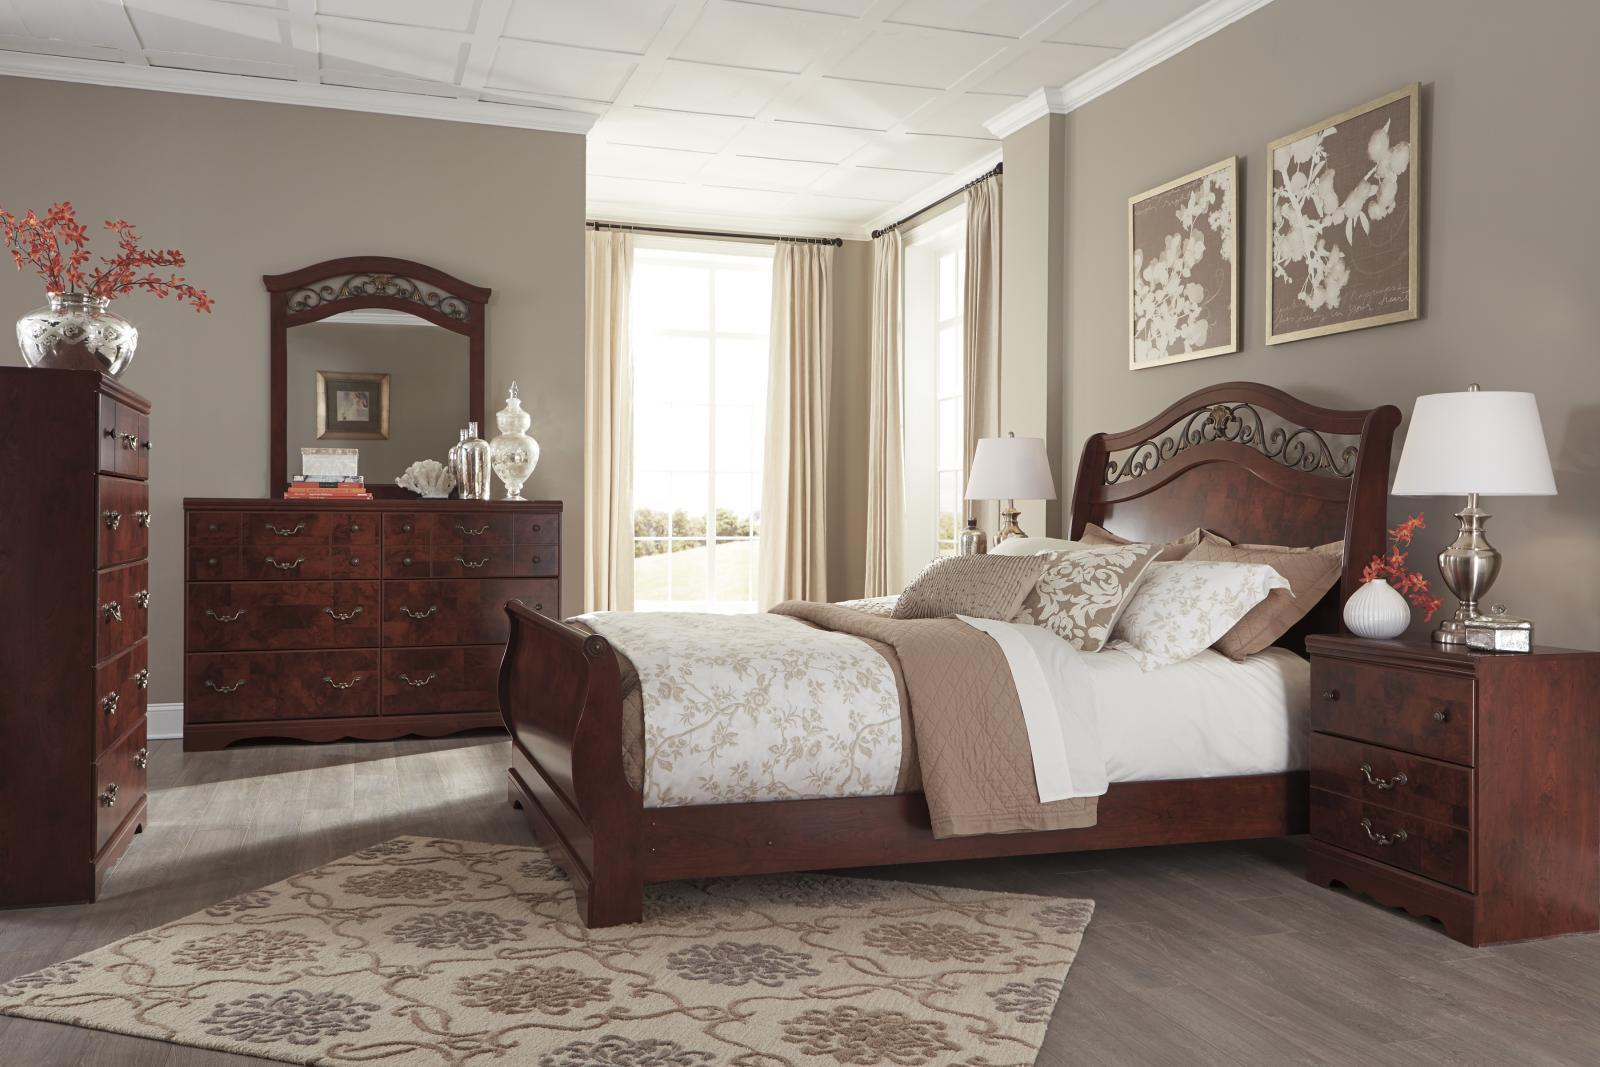 Queen Leather Sleigh Bed Master Bedroom Furniture Set Versailles Sleigh Bedroom Set Bedroom Sets